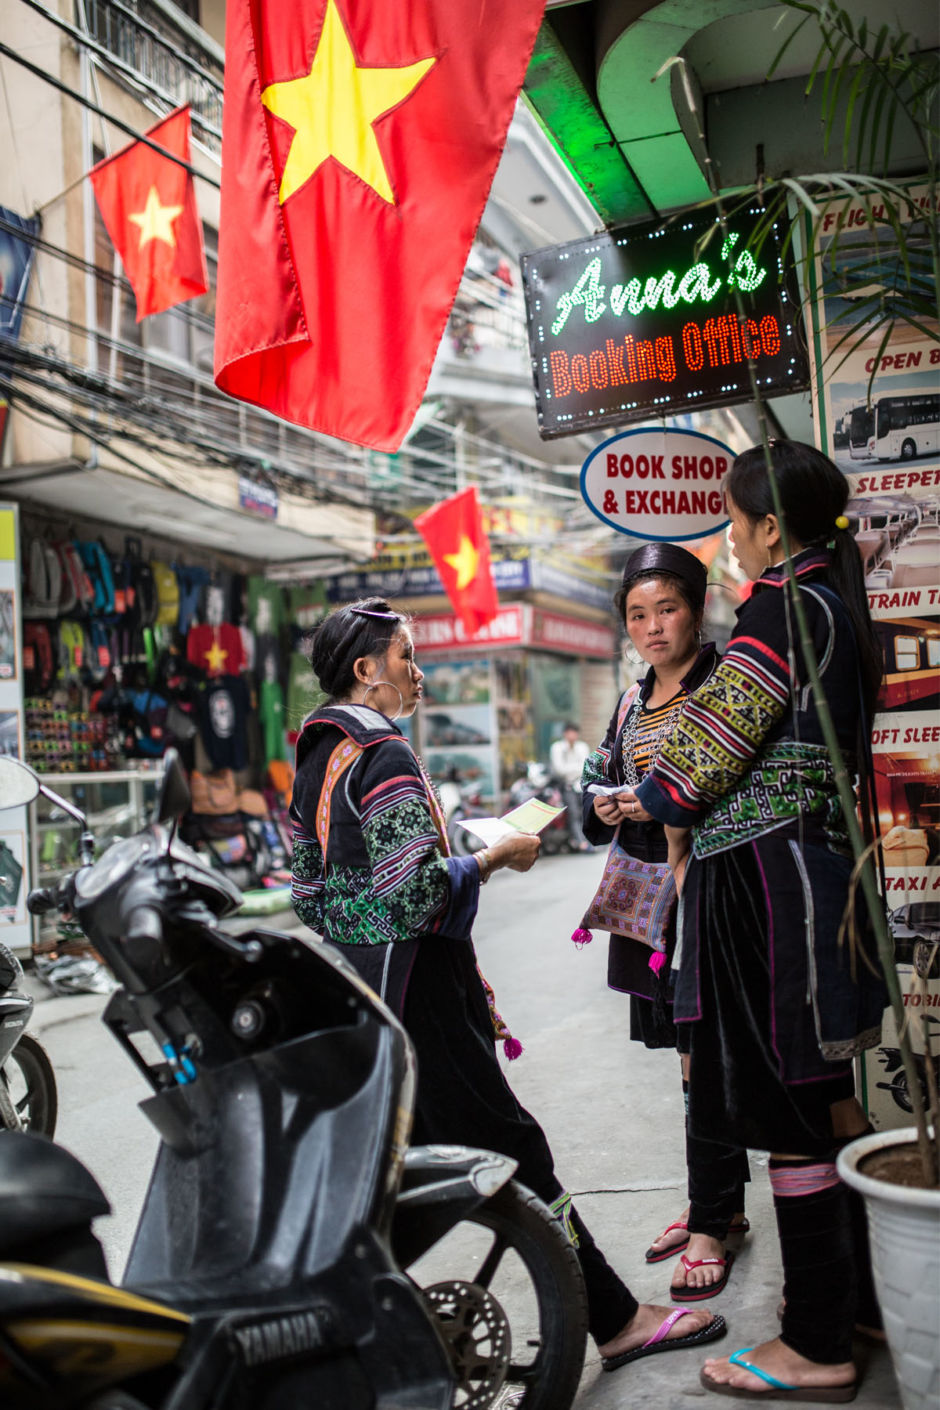 A group of Black Hmong women prepare to network with tour operators in Hanoi. They are small business entrepreneurs running homestays, embroidery shops, and herbal baths, and on this trip, are hoping to build connections in Hanoi.